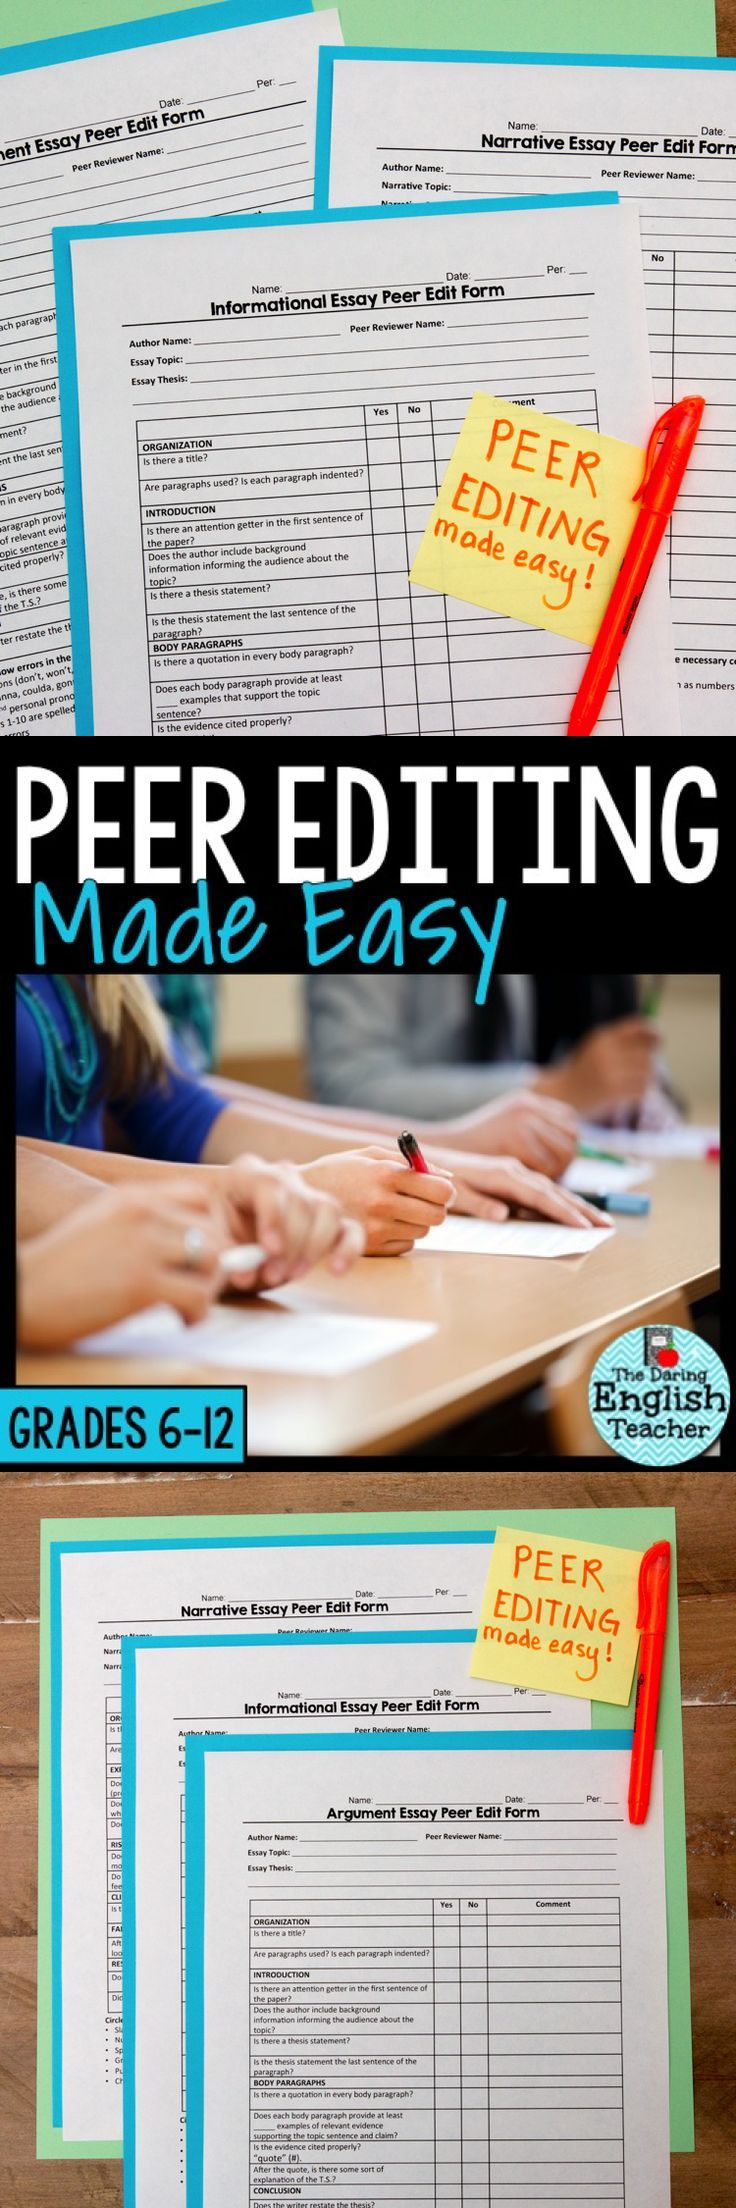 teaching narrative essay writing middle school Essay writing in elementary, middle and high school is easy if you know the steps to follow: create an outline, thesis, introduction, body and conclusion.